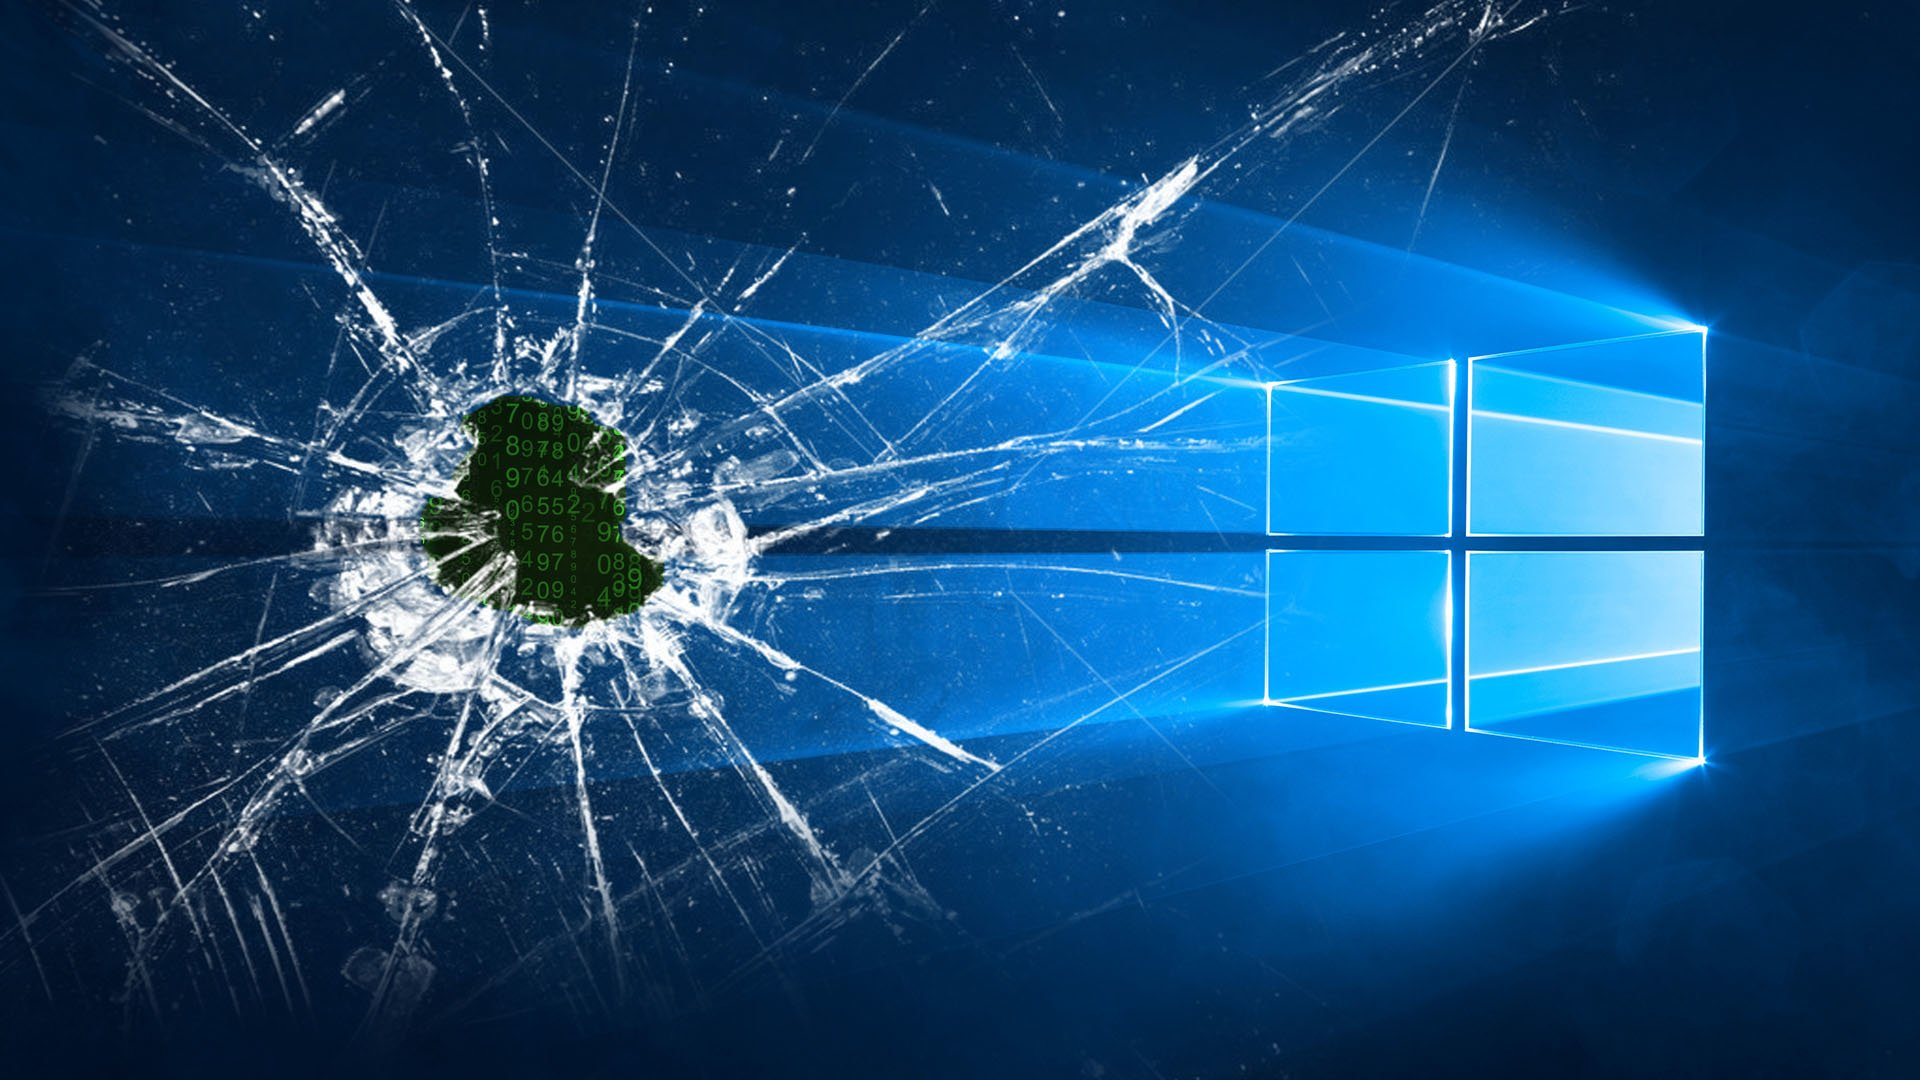 Crack screen windows 10 full hd wallpaper and background image humor technology broken screen wallpaper voltagebd Choice Image